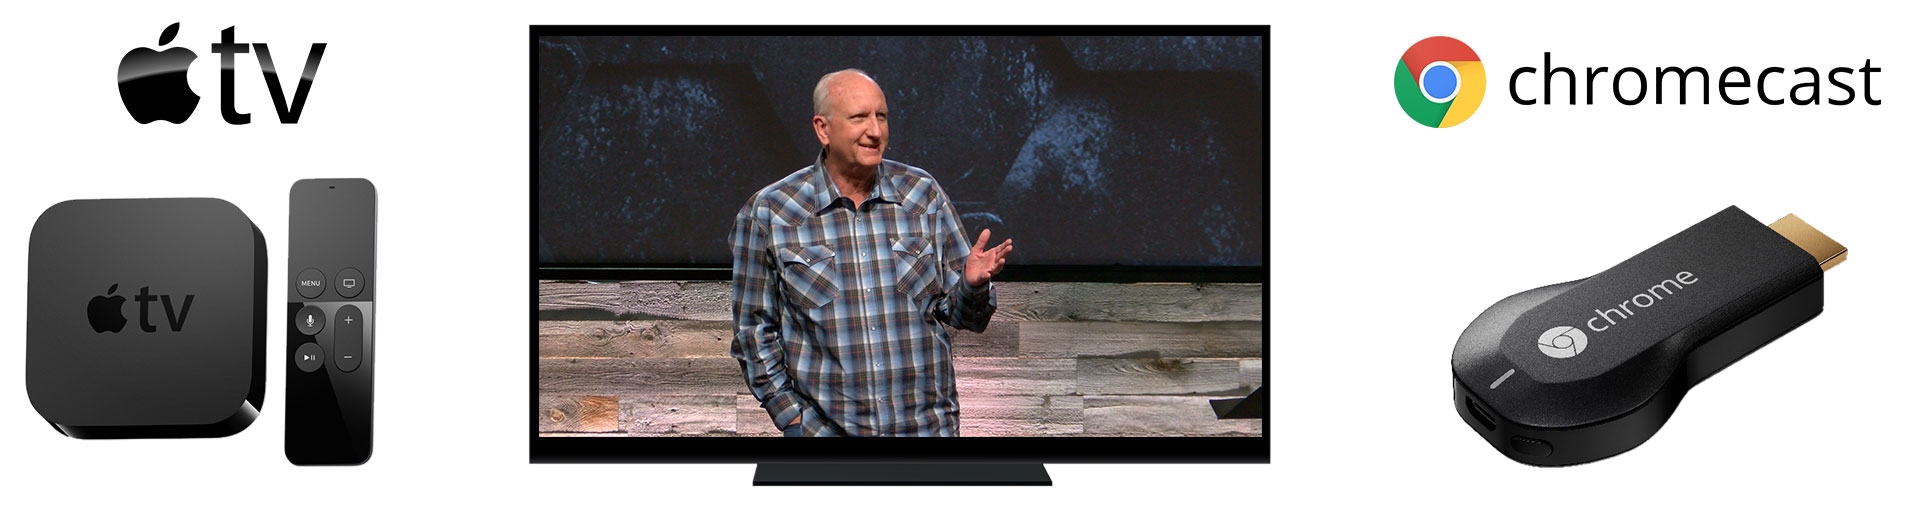 Watch the weekend message on your TV through AppleTV or Chromecast